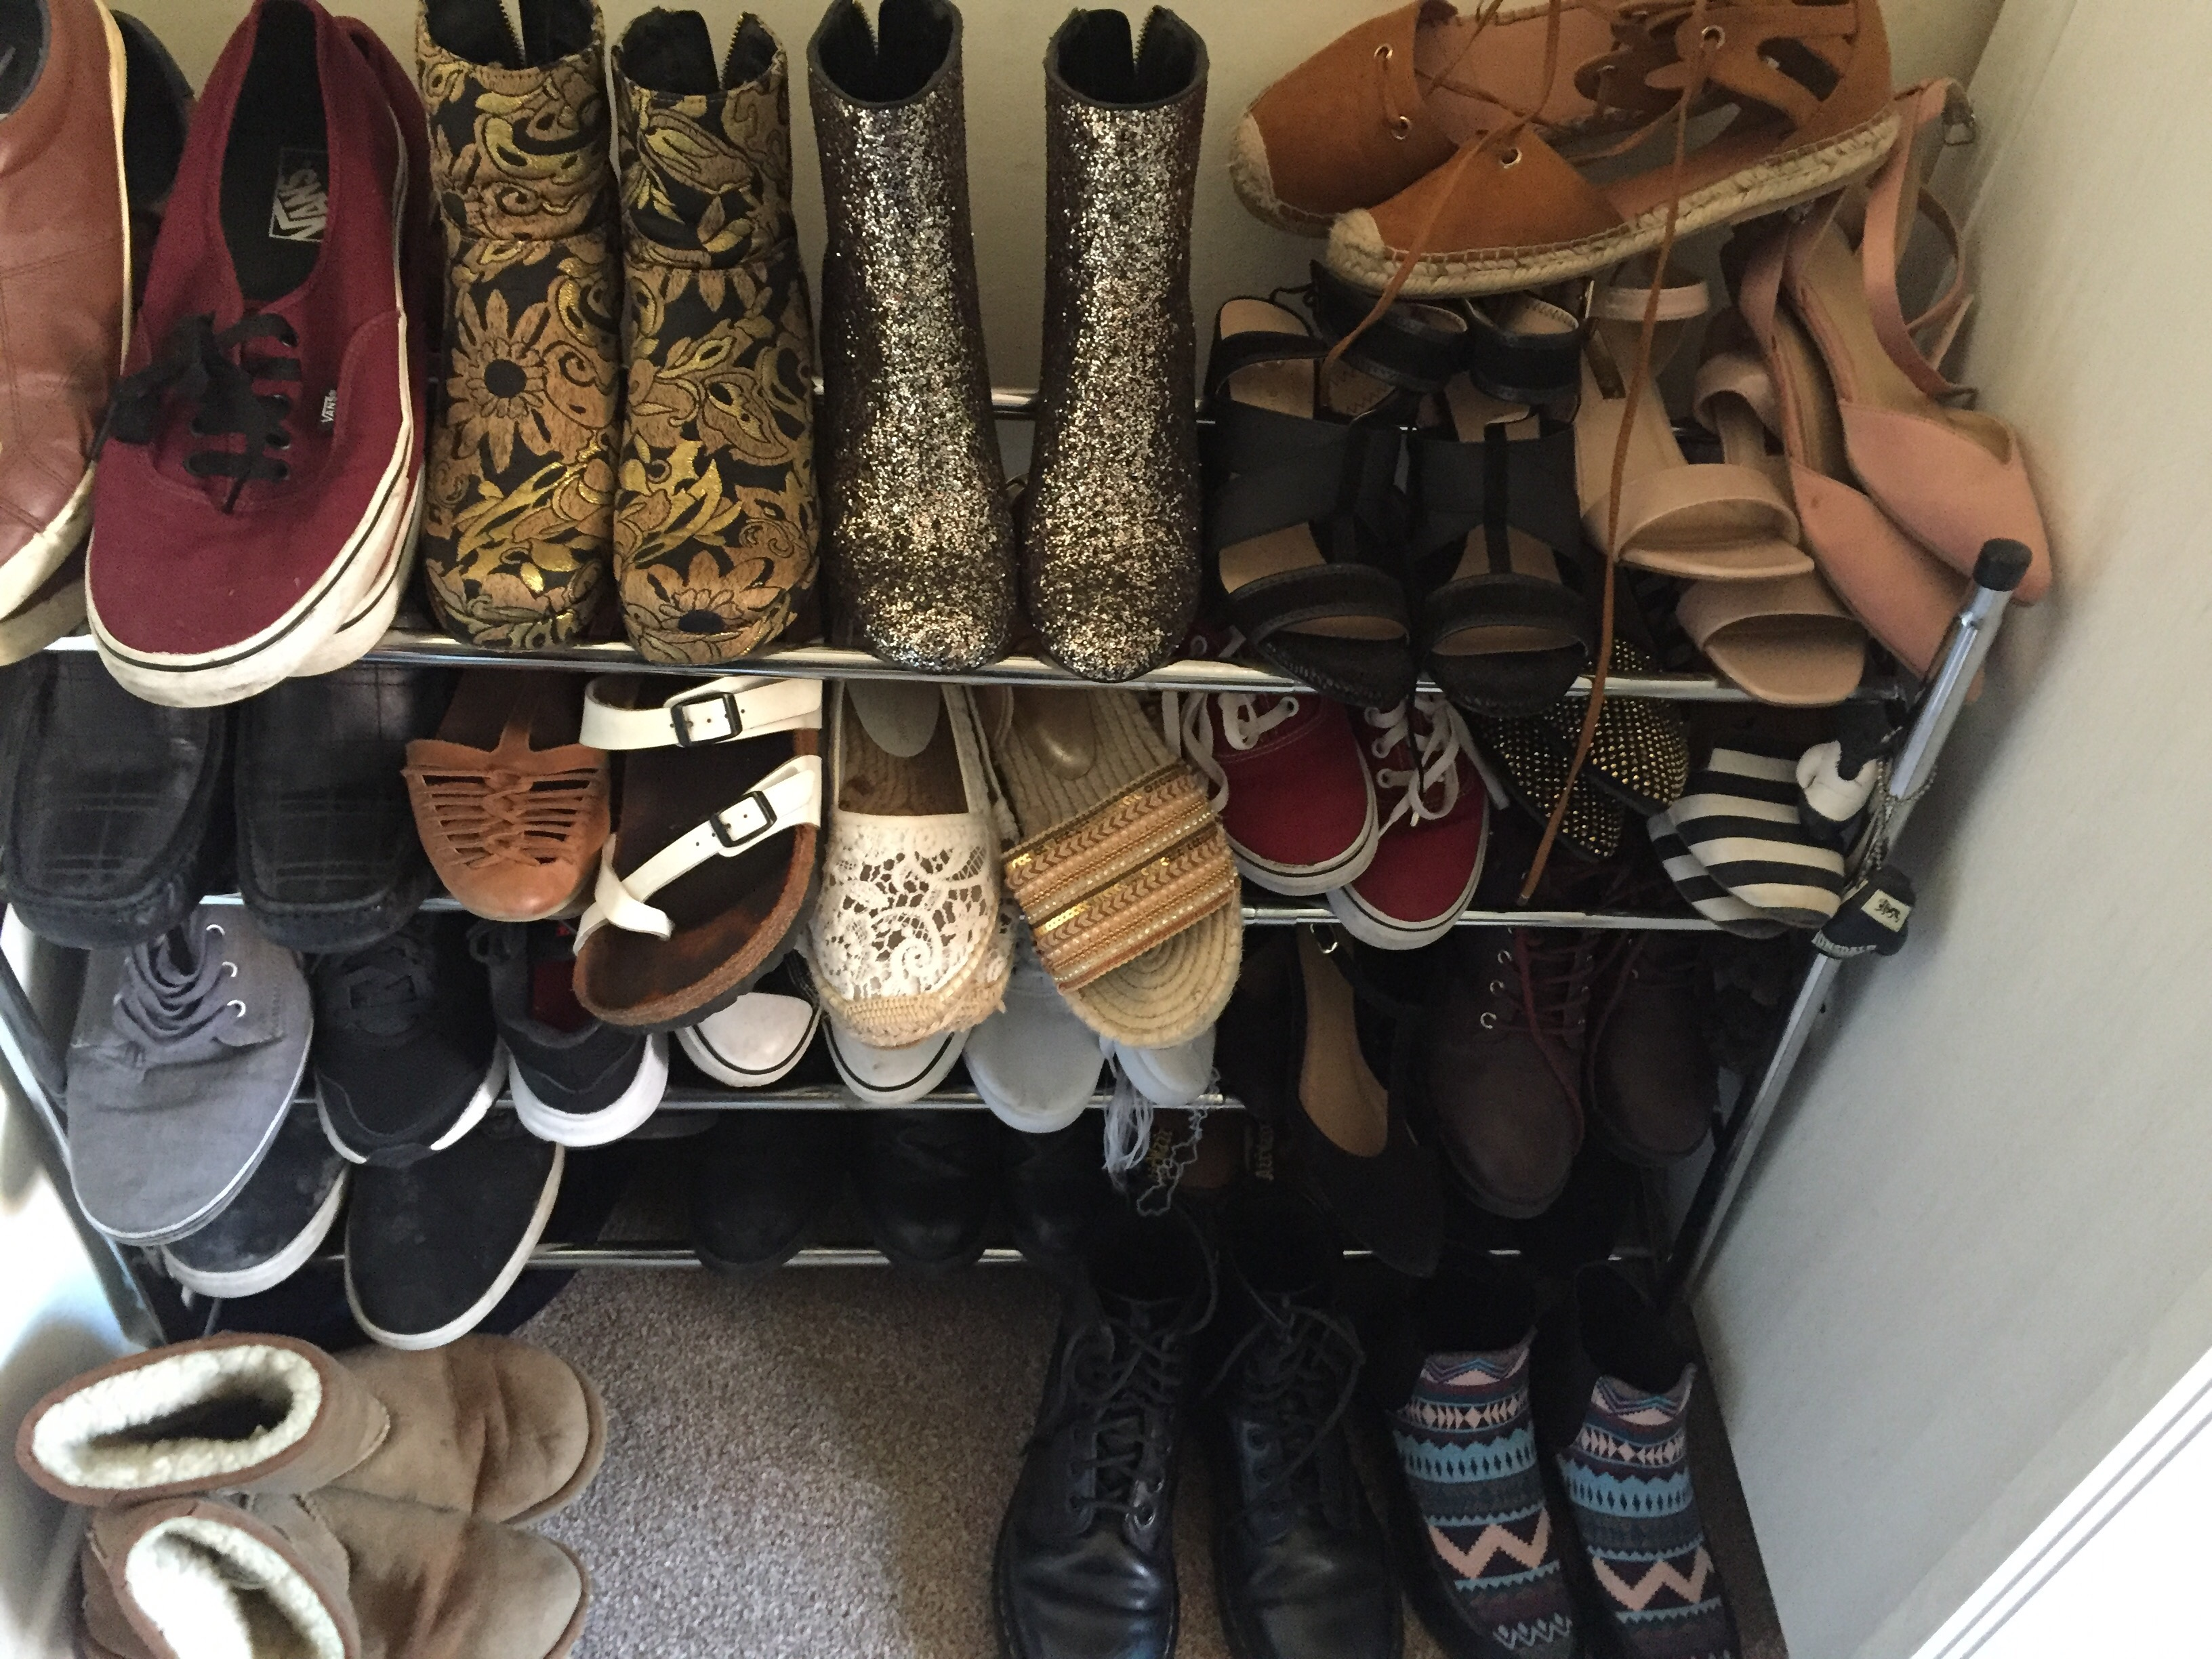 The Shoe Collection Challenge